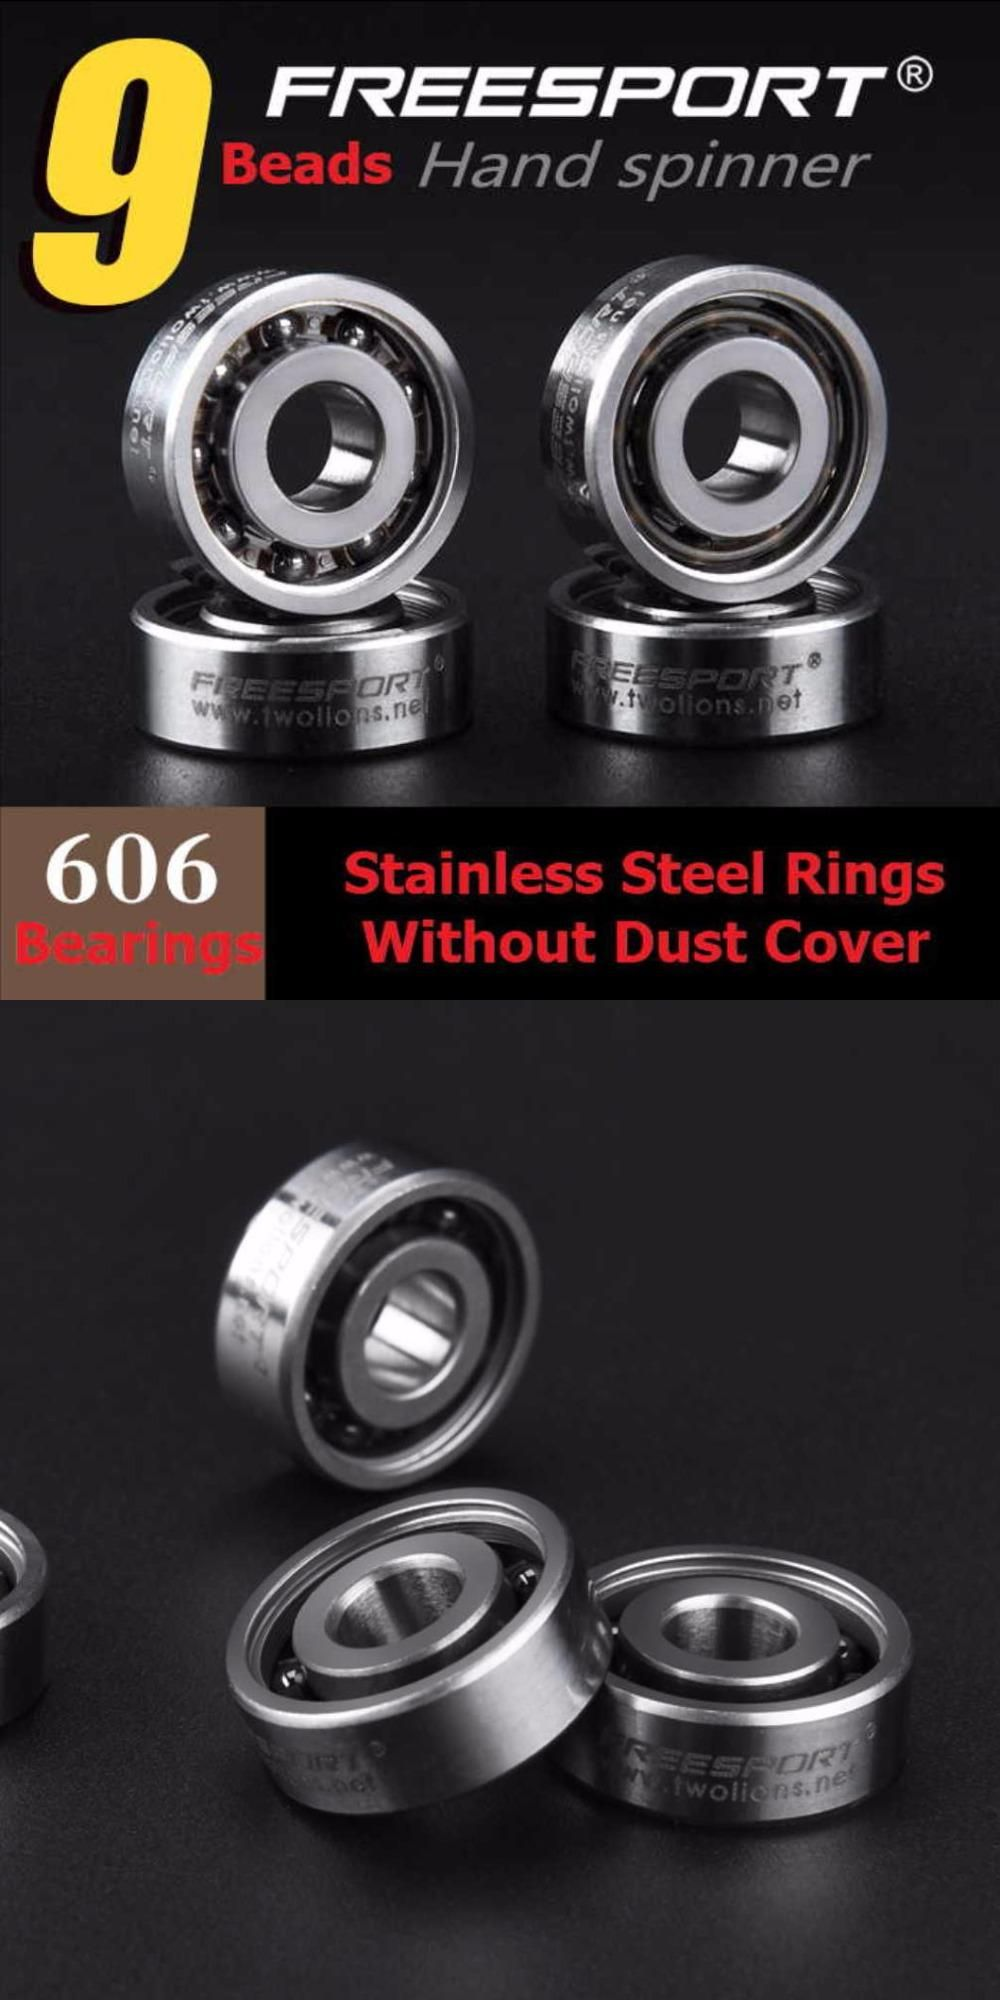 Visit To Buy 1 Piece Freesport 606 Stainless Steel 9 Beads Hybrid Ceramic Bearing Without Dust Cover For Fidget Hand Spinner Rings For Men Hand Spinner Rings